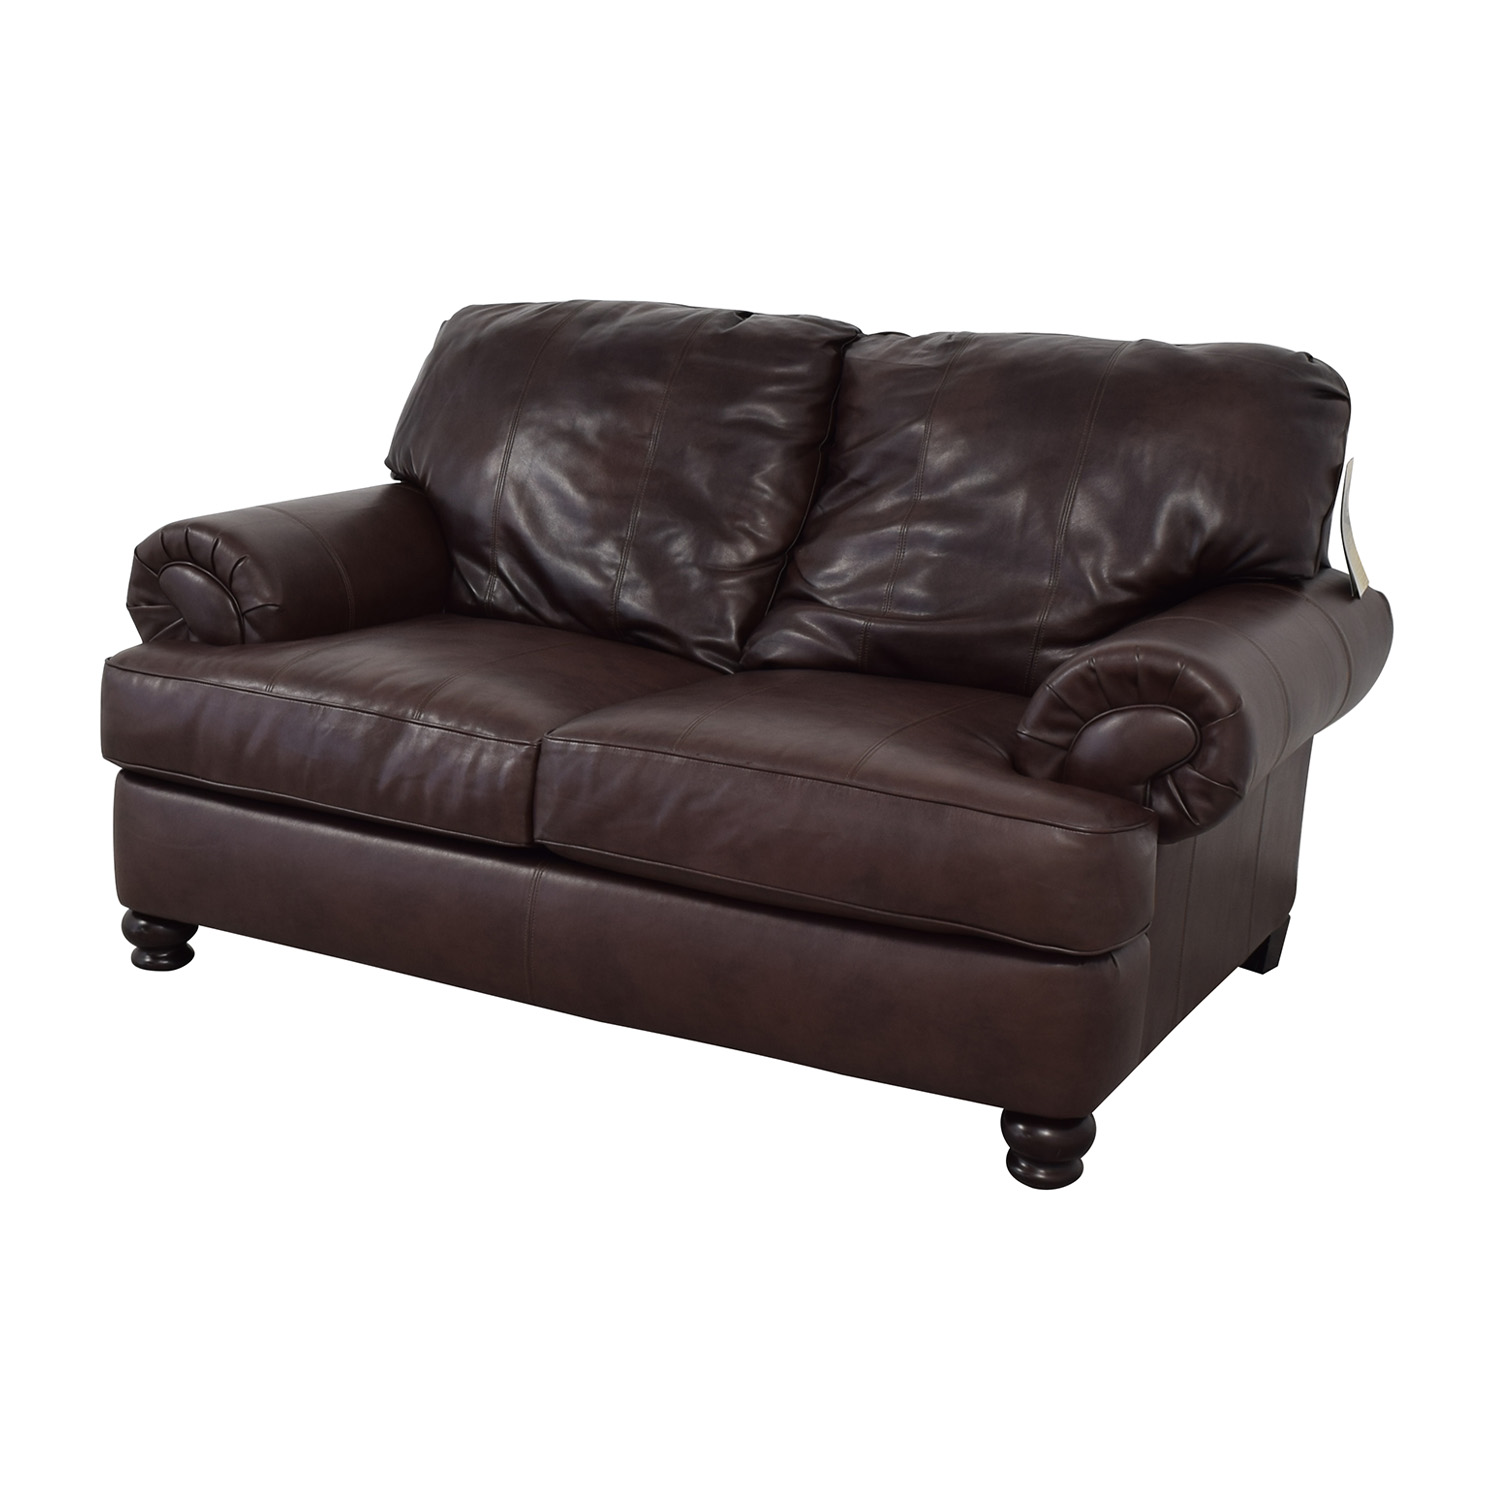 Jackson Furniture Jackson Furniture Charlotte Brown Loveseat discount